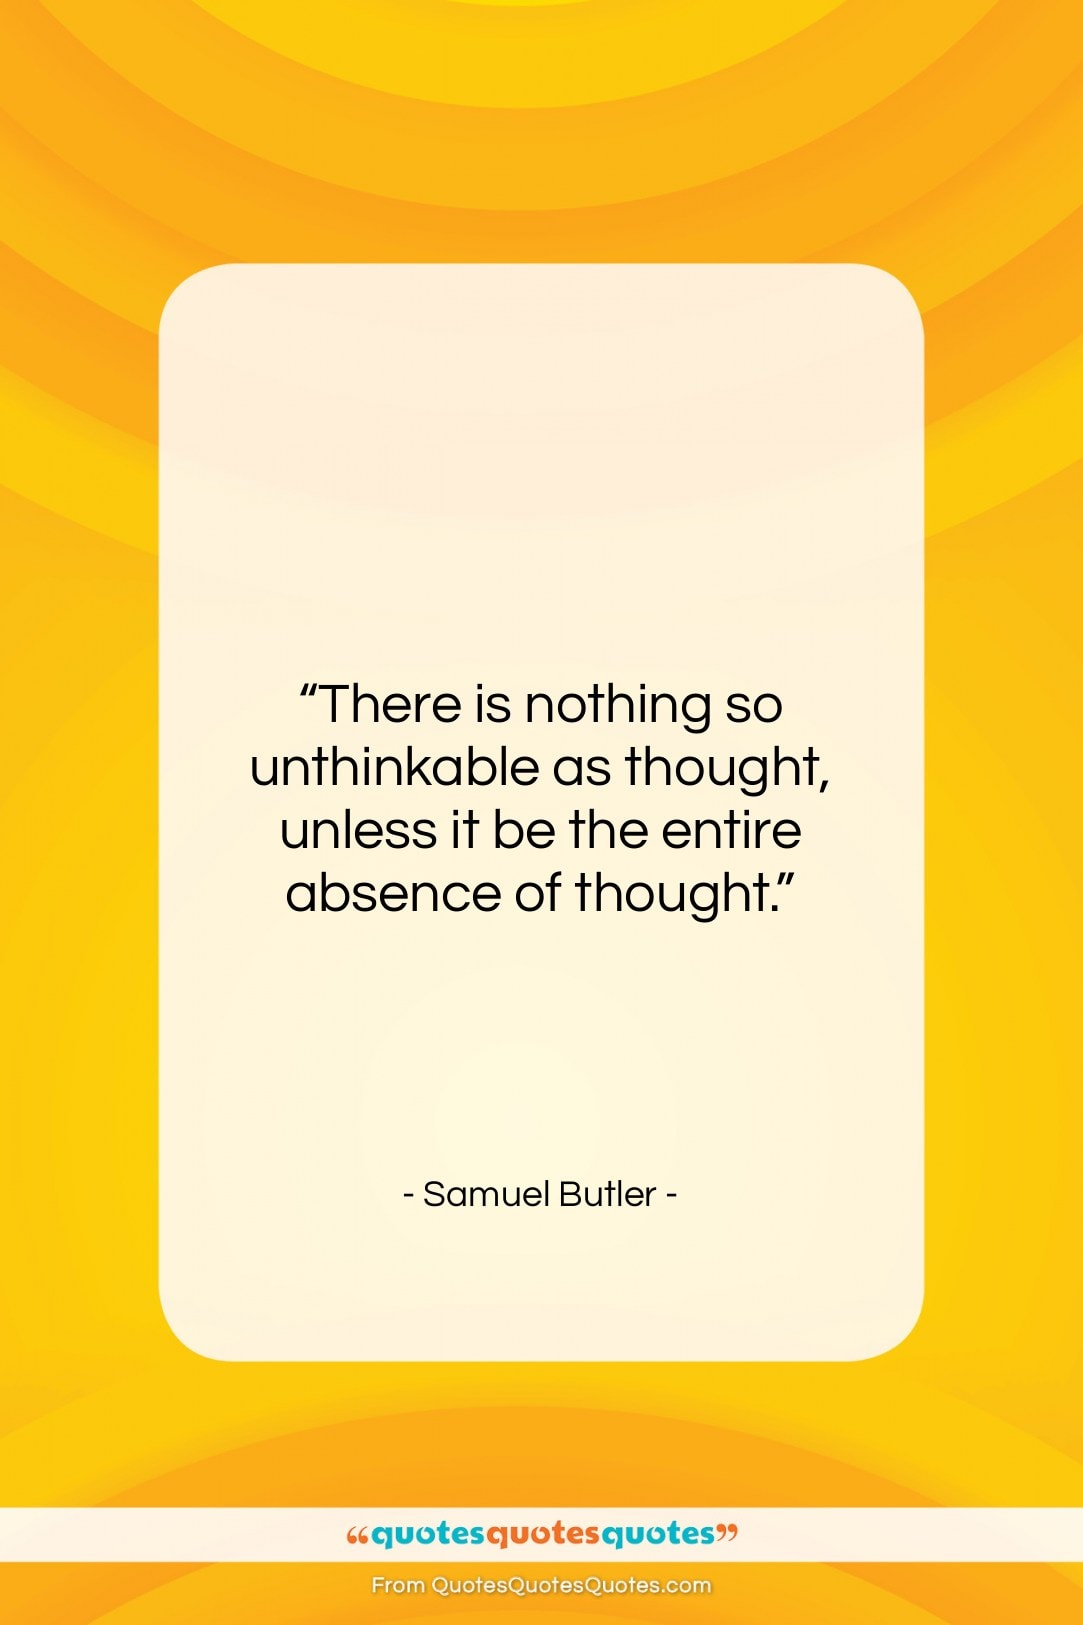 """Samuel Butler quote: """"There is nothing so unthinkable as thought,…""""- at QuotesQuotesQuotes.com"""